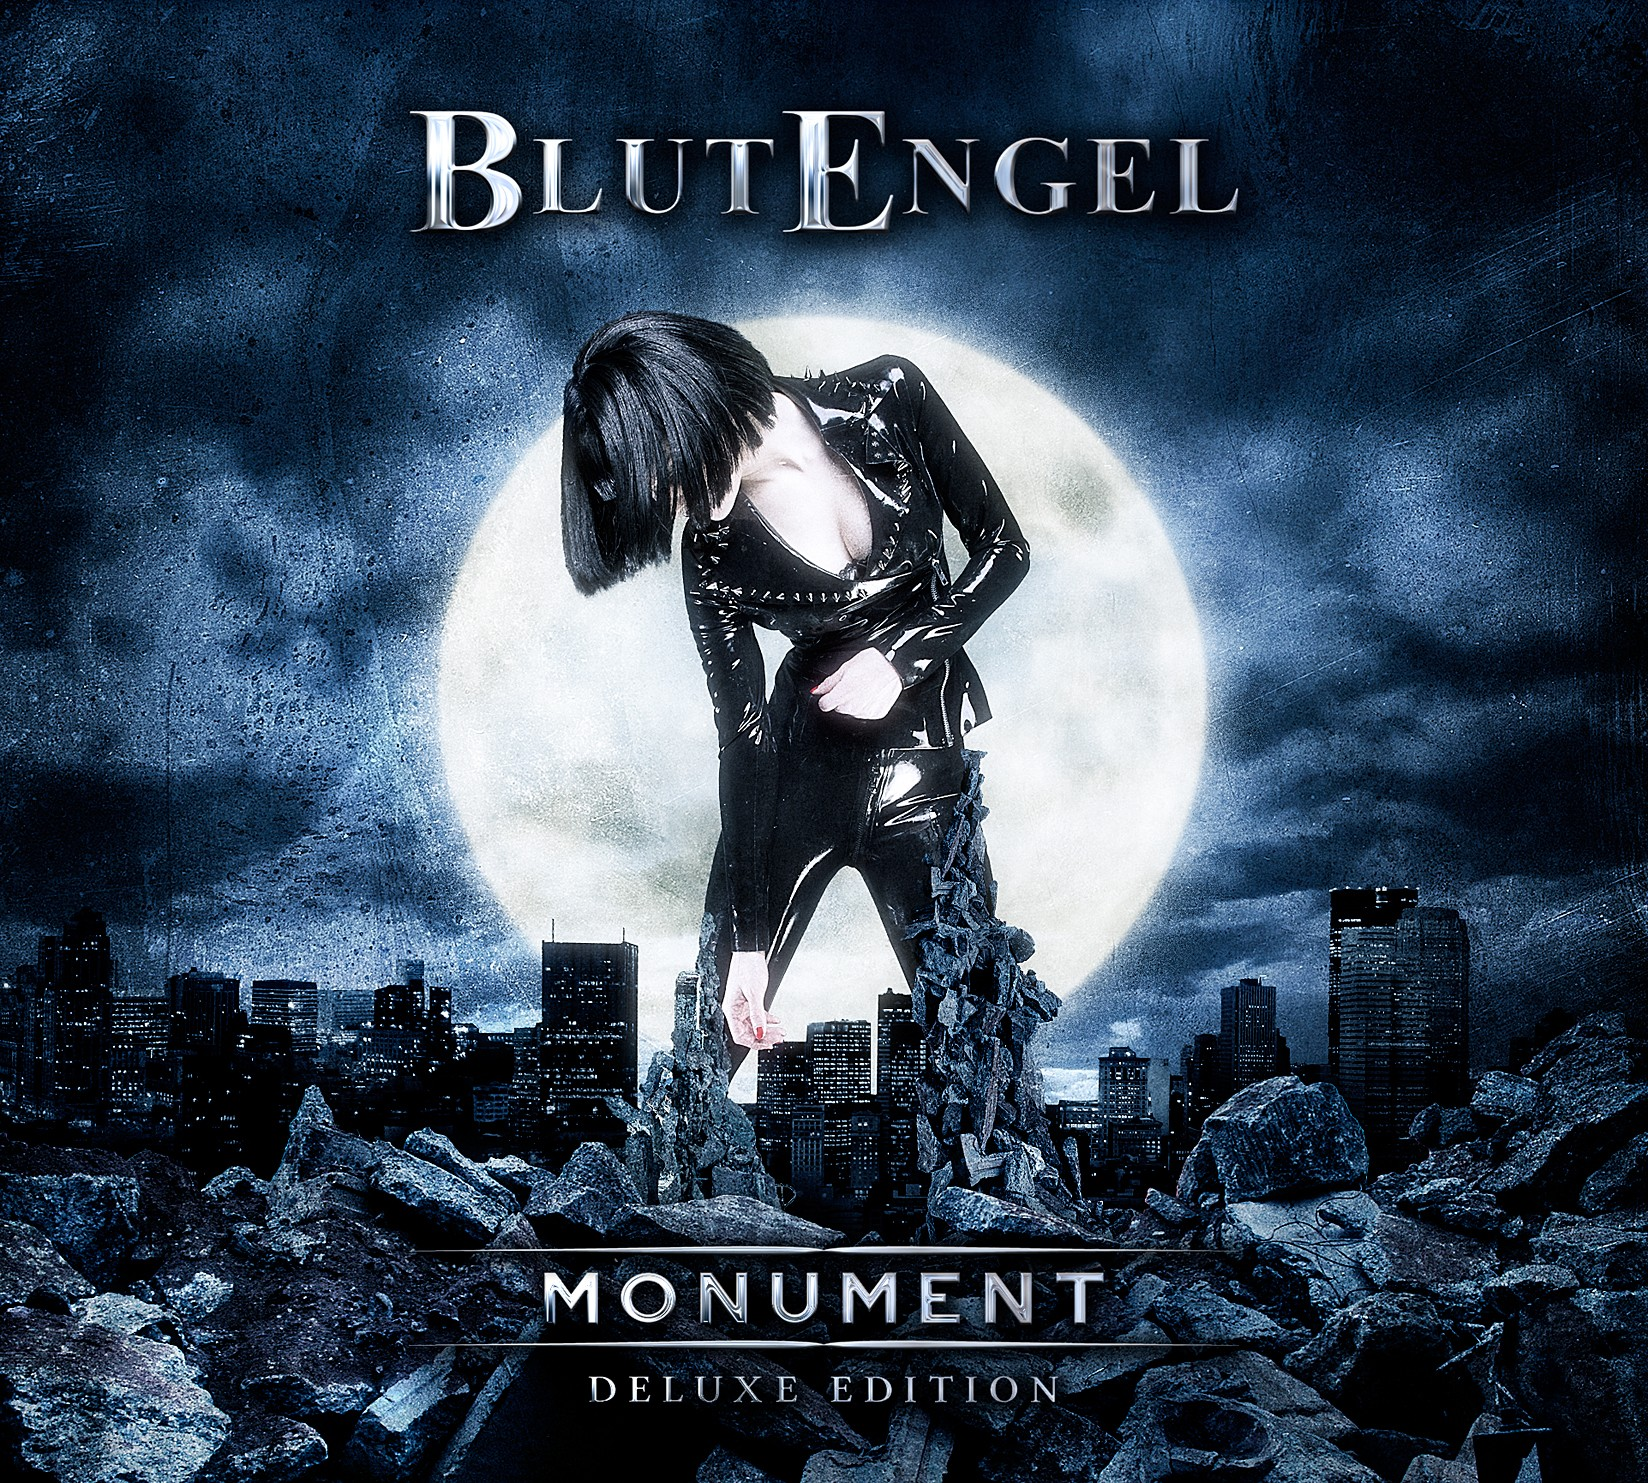 Blutengel - Monument - 2CD - DigiPak 2CD